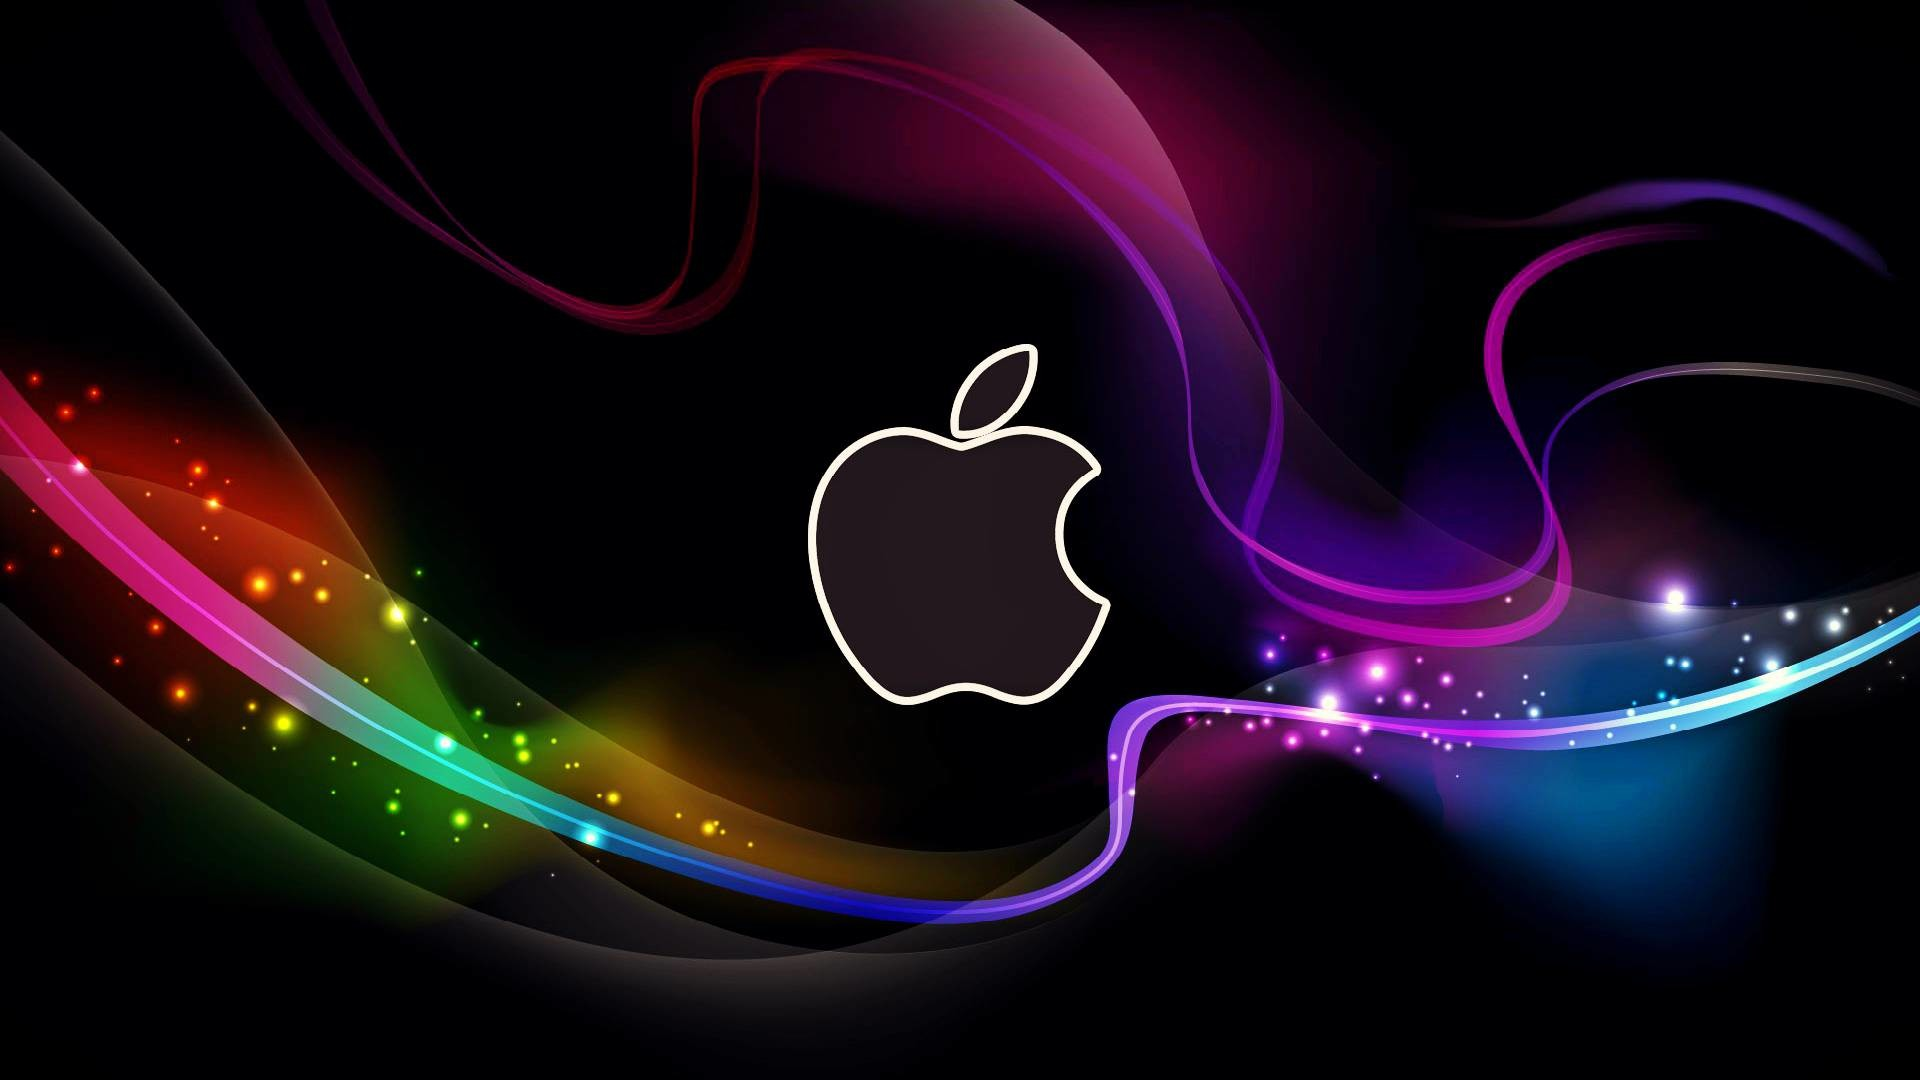 Wallpapers For Cool Apple Logo Wallpaper   Black 3d Hd 1920x1080